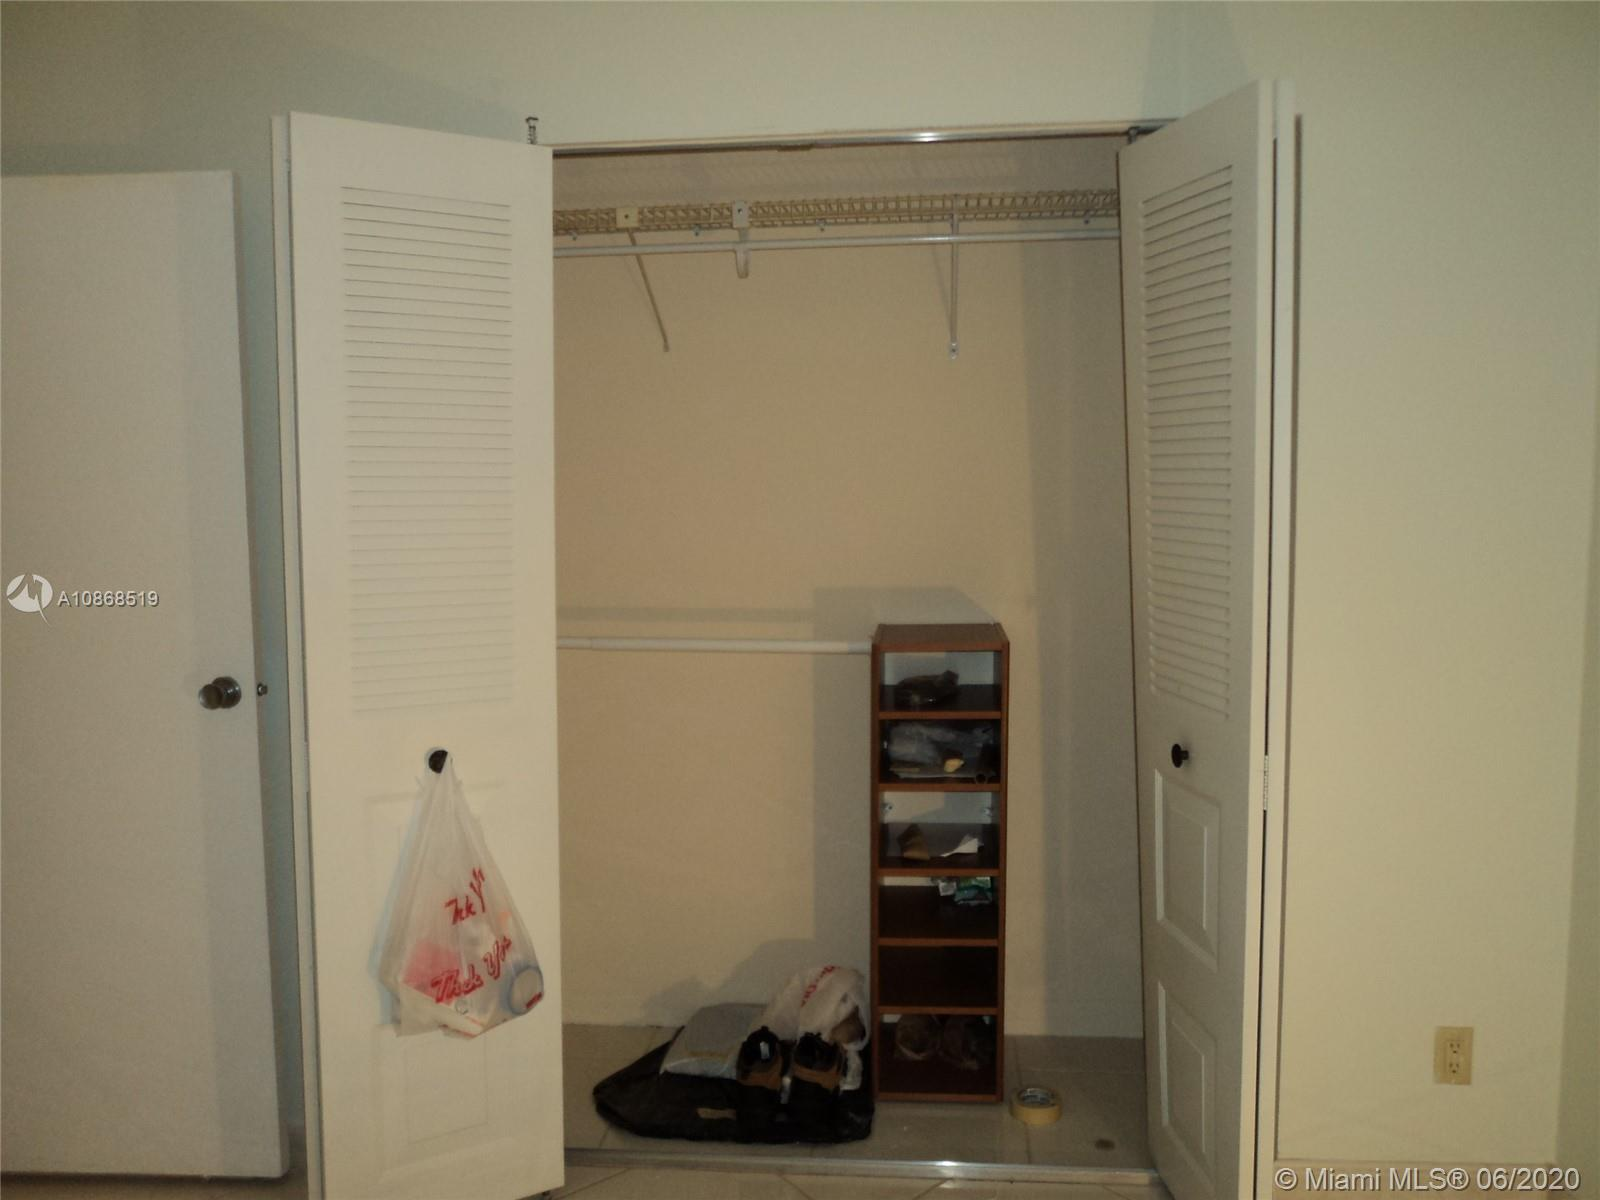 Photo of 20301 Country Club Dr #623, Aventura, Florida, 33180 - Second large closet in master BR.